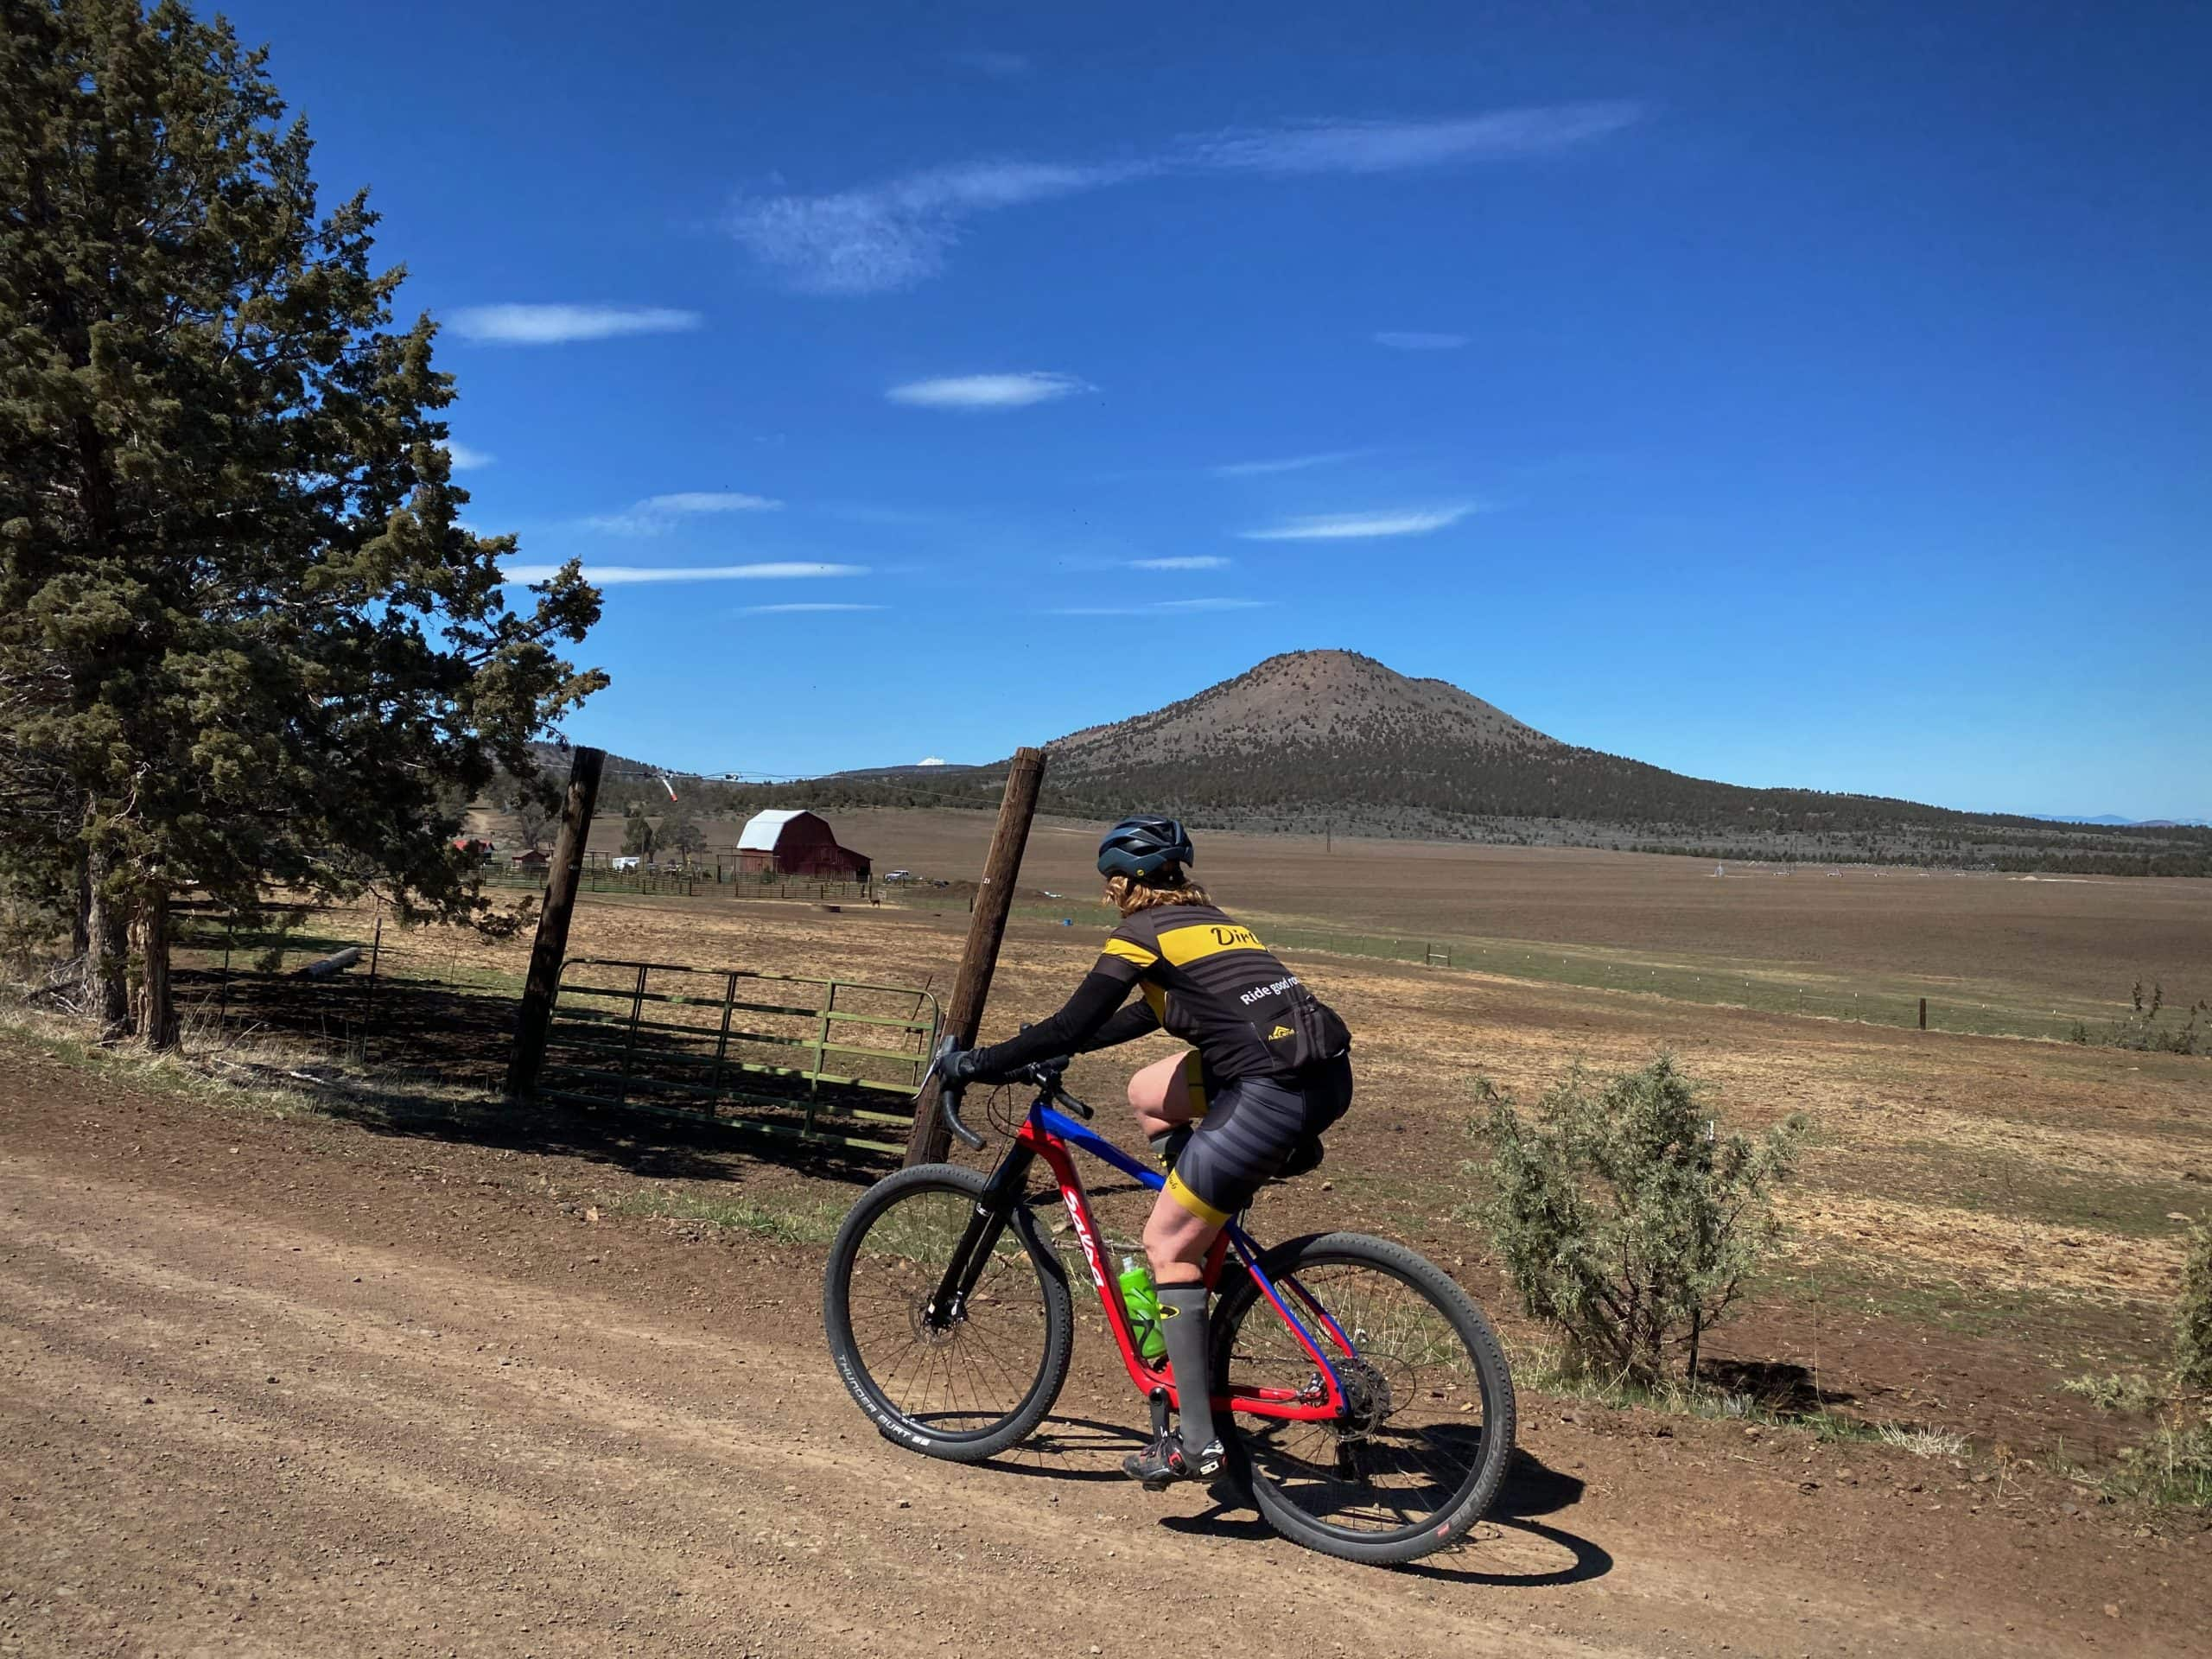 Gravel Girl on the beginning of the second gravel sector - smooth and fast! Near Redmond, OR.